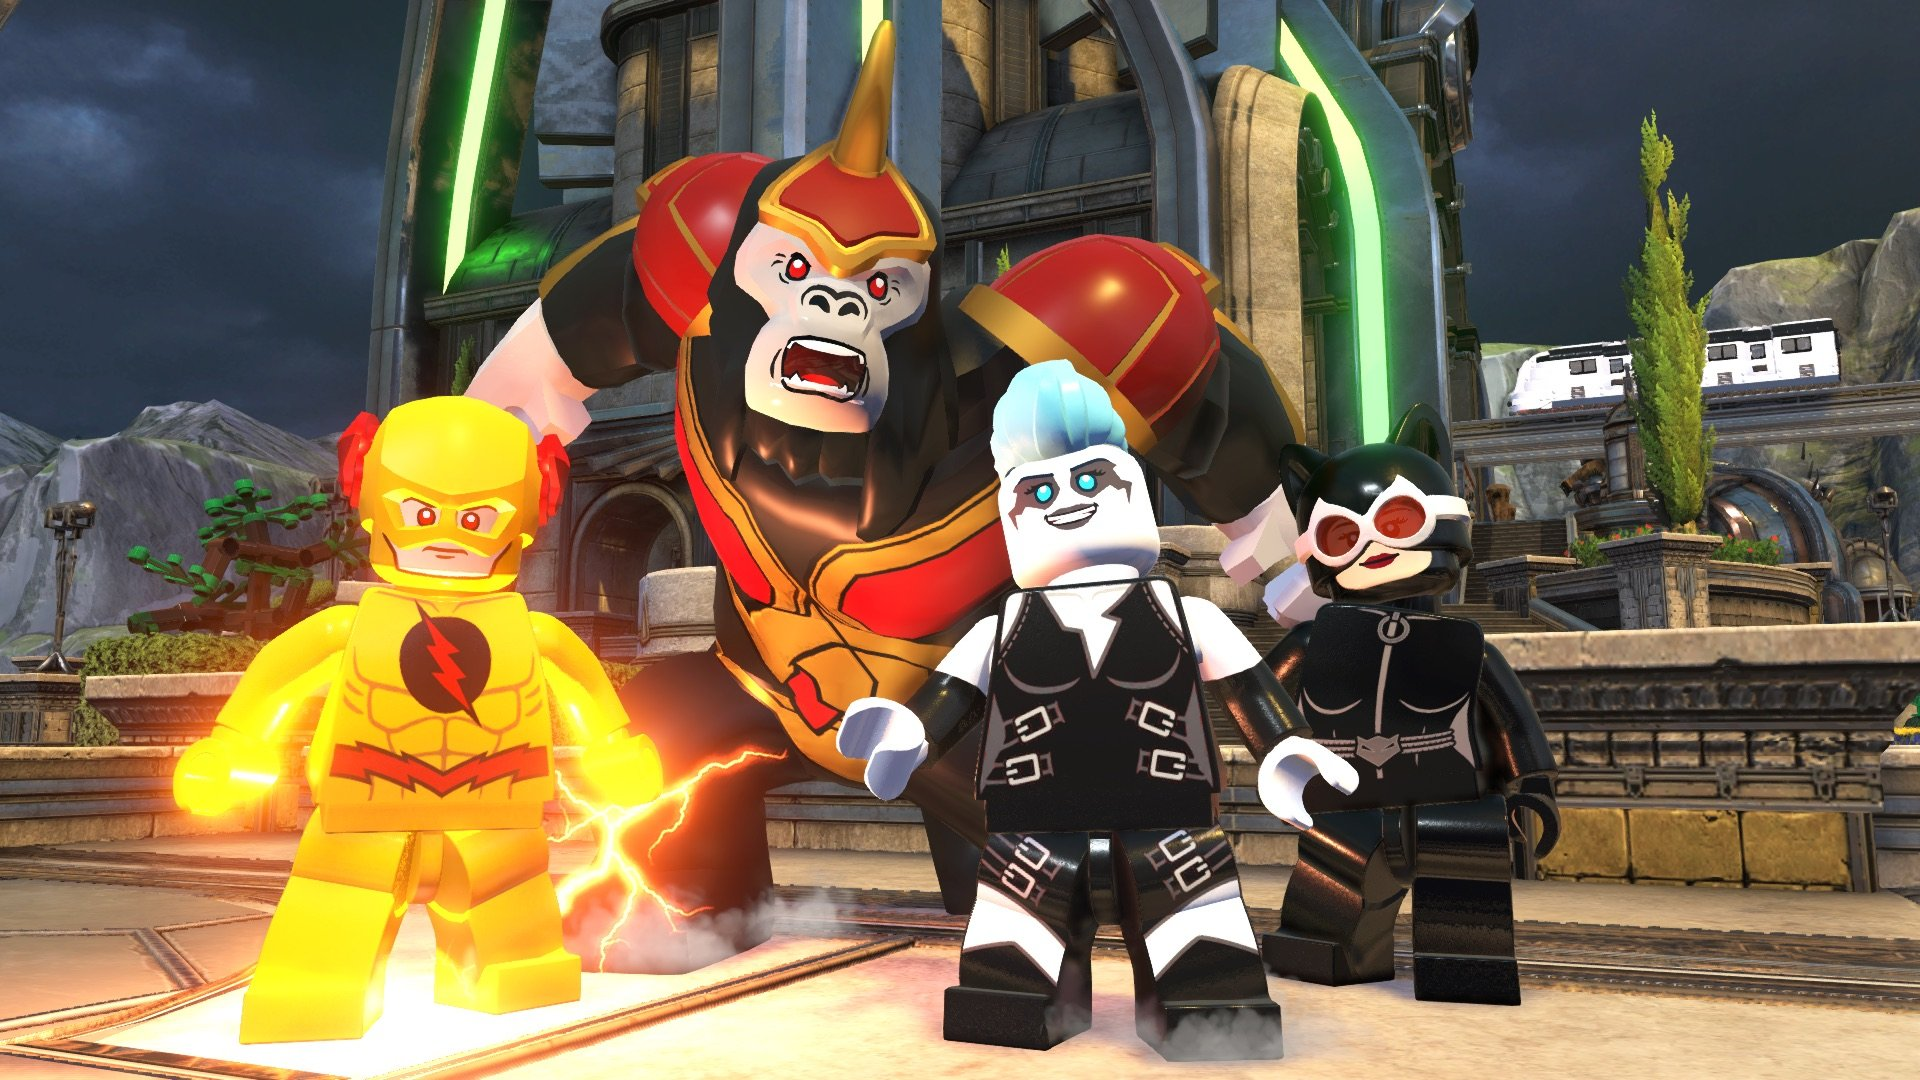 LEGO Villains in the DC universe